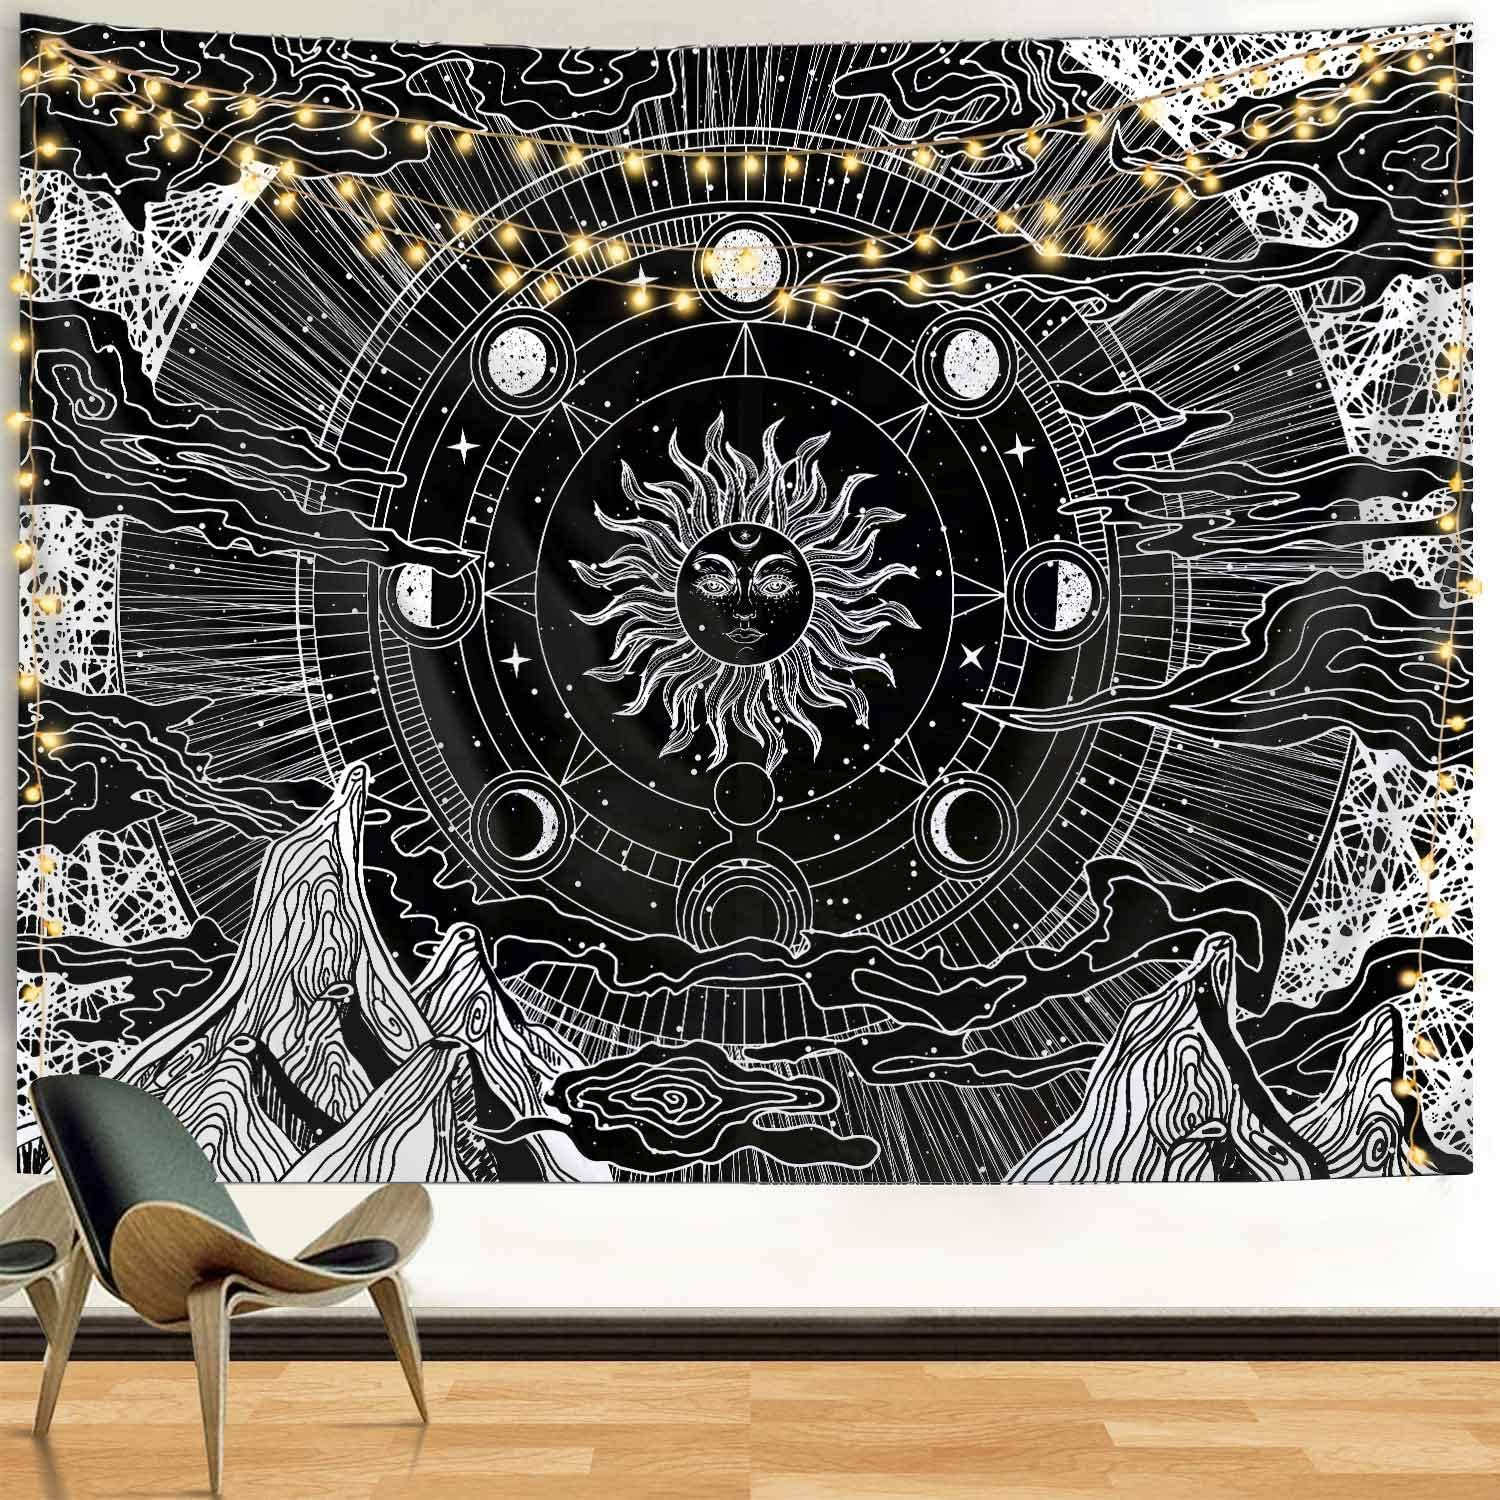 Funeon Black And White Tapestry Wall Hanging Extra Large Sun And Moon Tapestry For Teen Girl Boy Room Dorm College Tapestry Cute Sun With Stars Mountain Tapestries Indie Room Decor Aesthetic